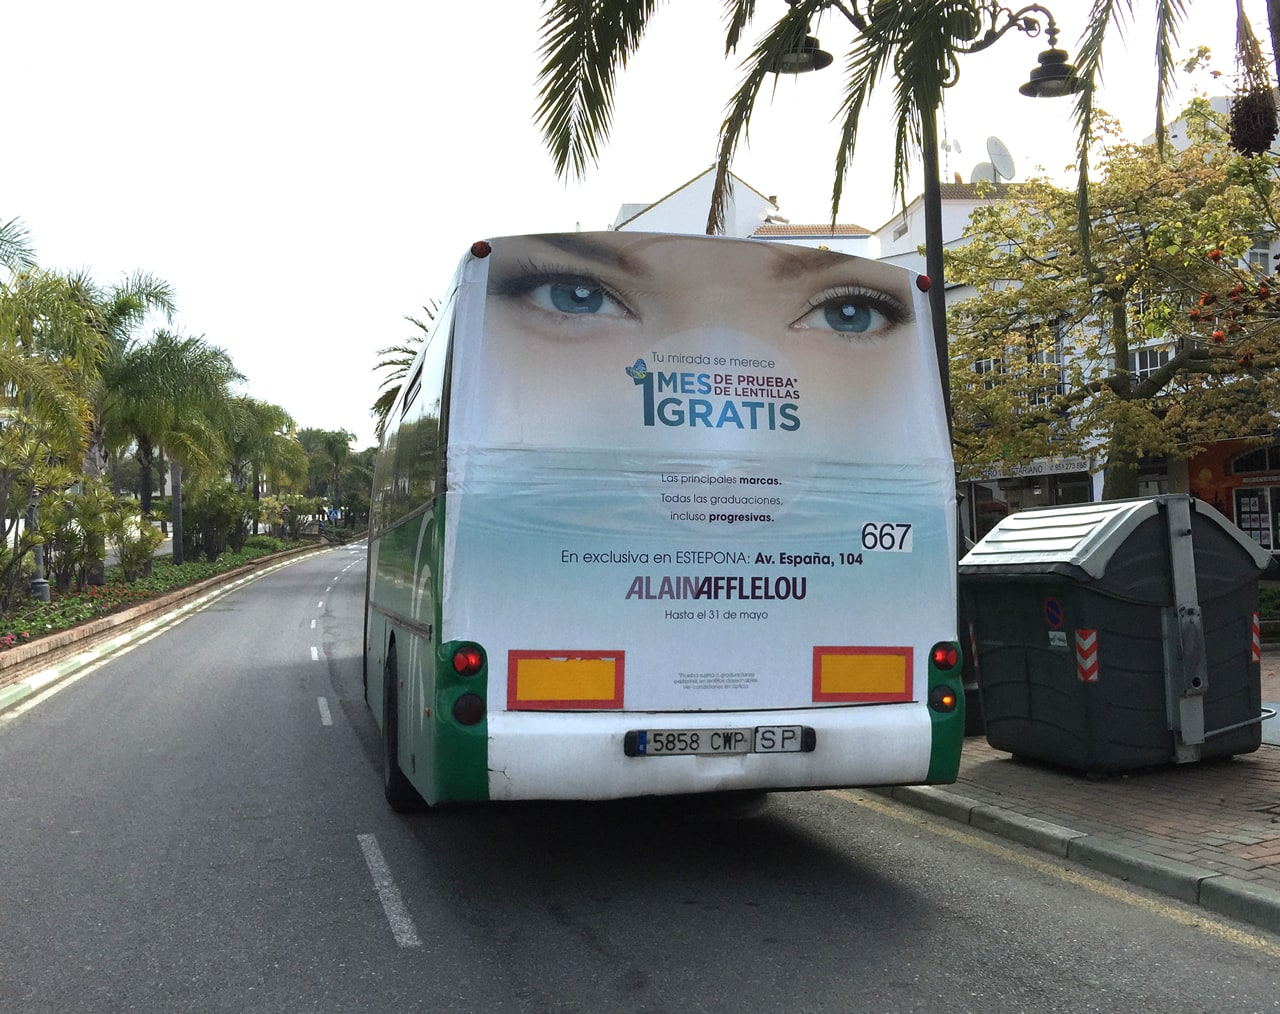 Bus advertising campaign in Marbella and Estepona for Alain Afflelou